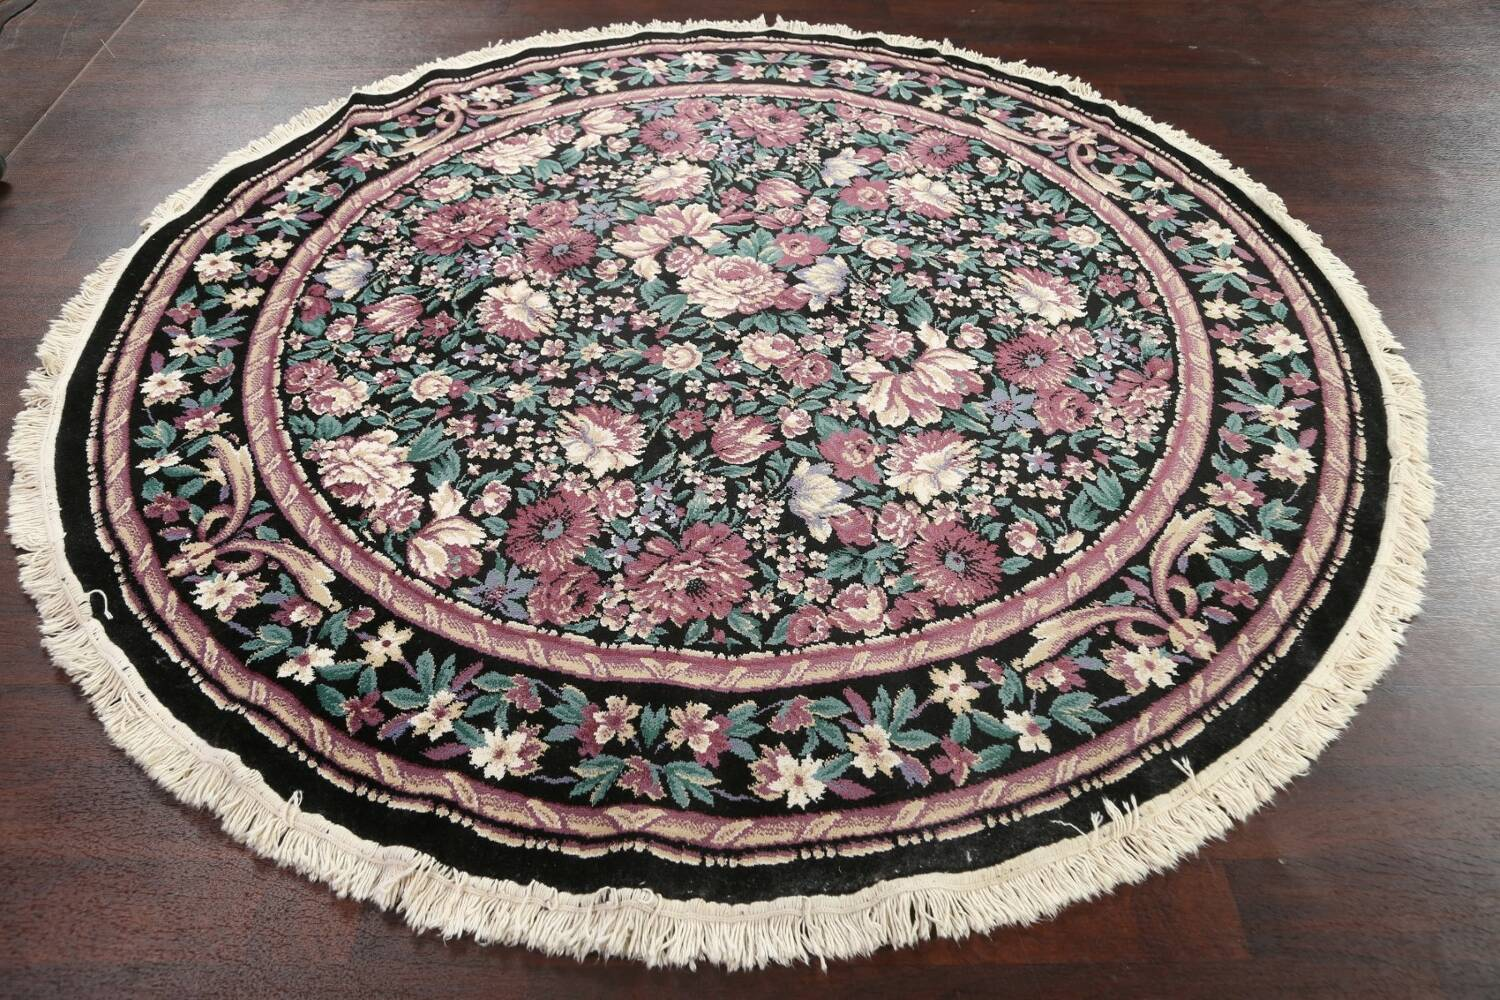 Floral Aubusson Round Area Rug 8x8 image 10